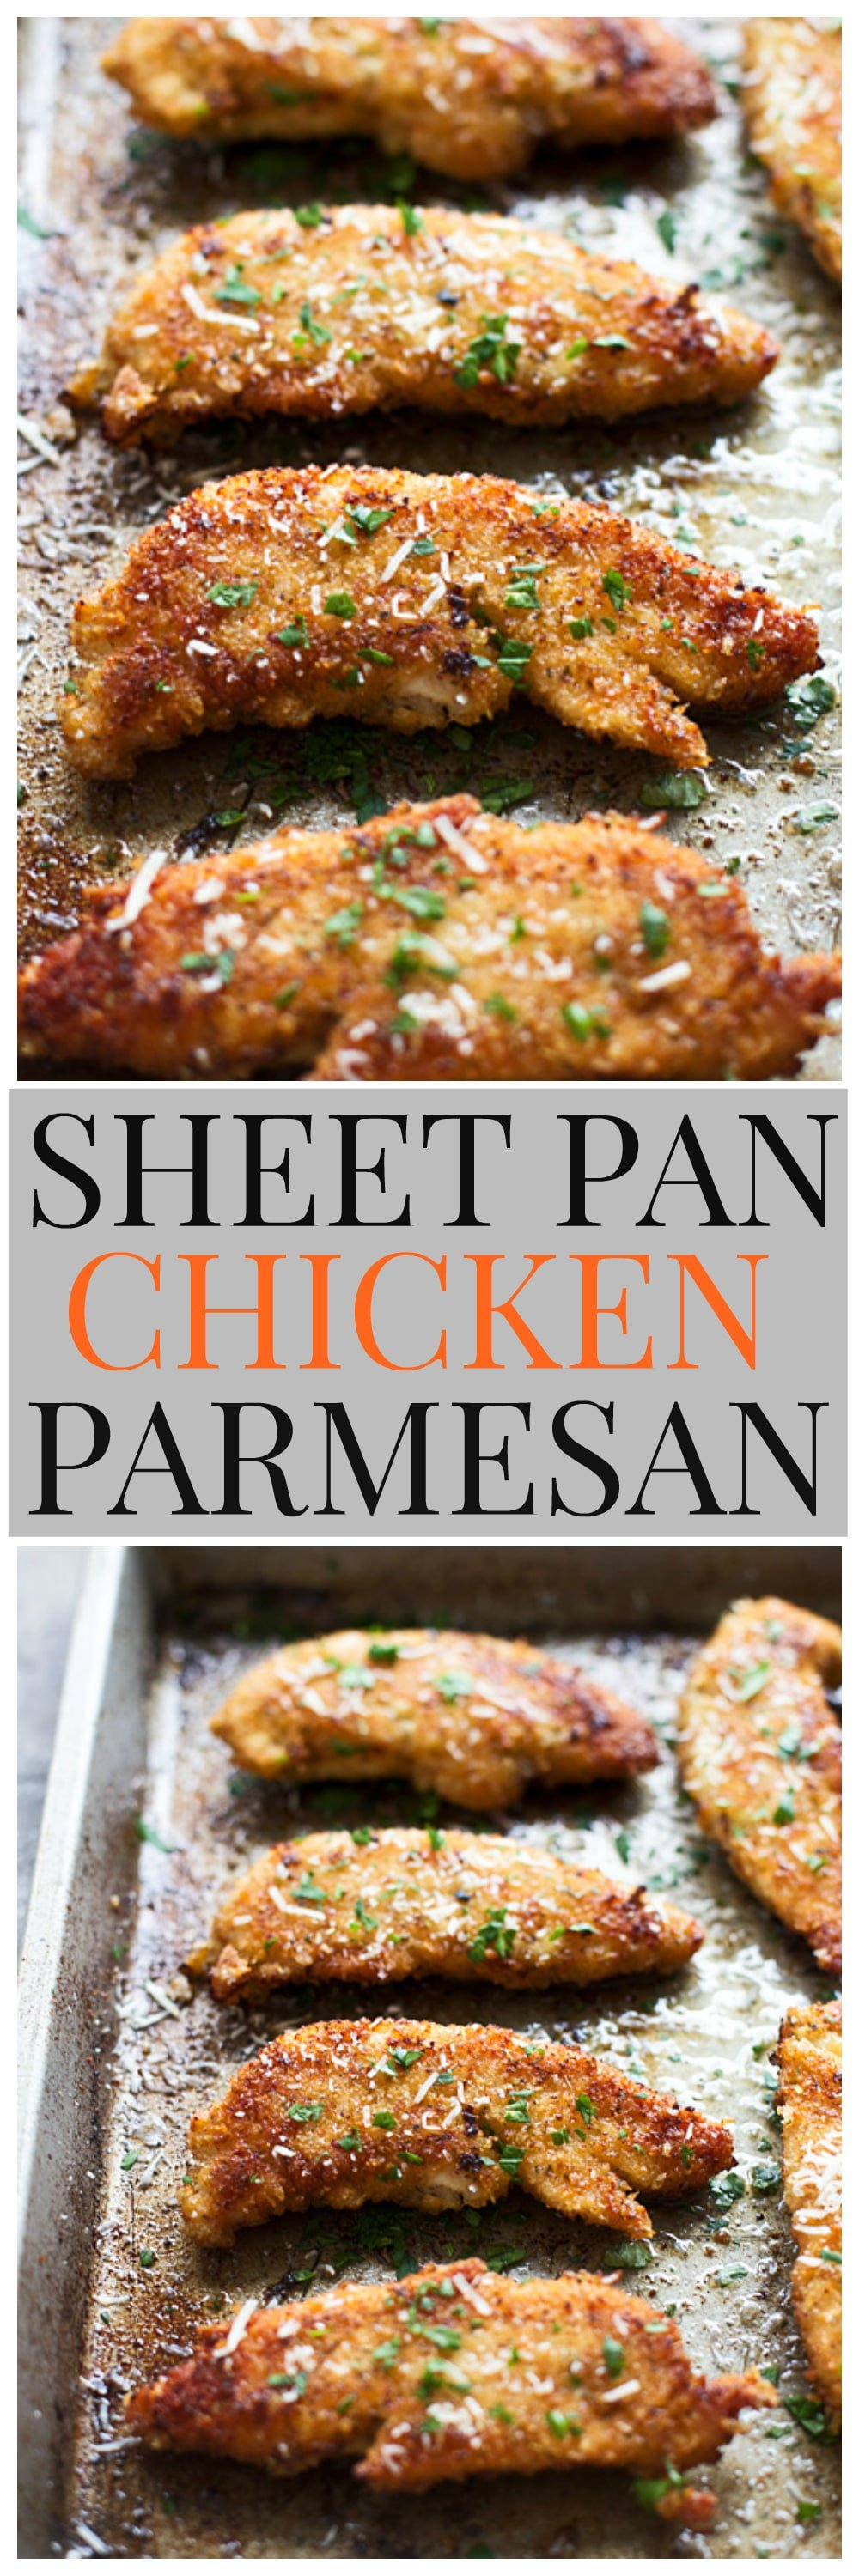 Crispy Sheet Pan Chicken Parmesan